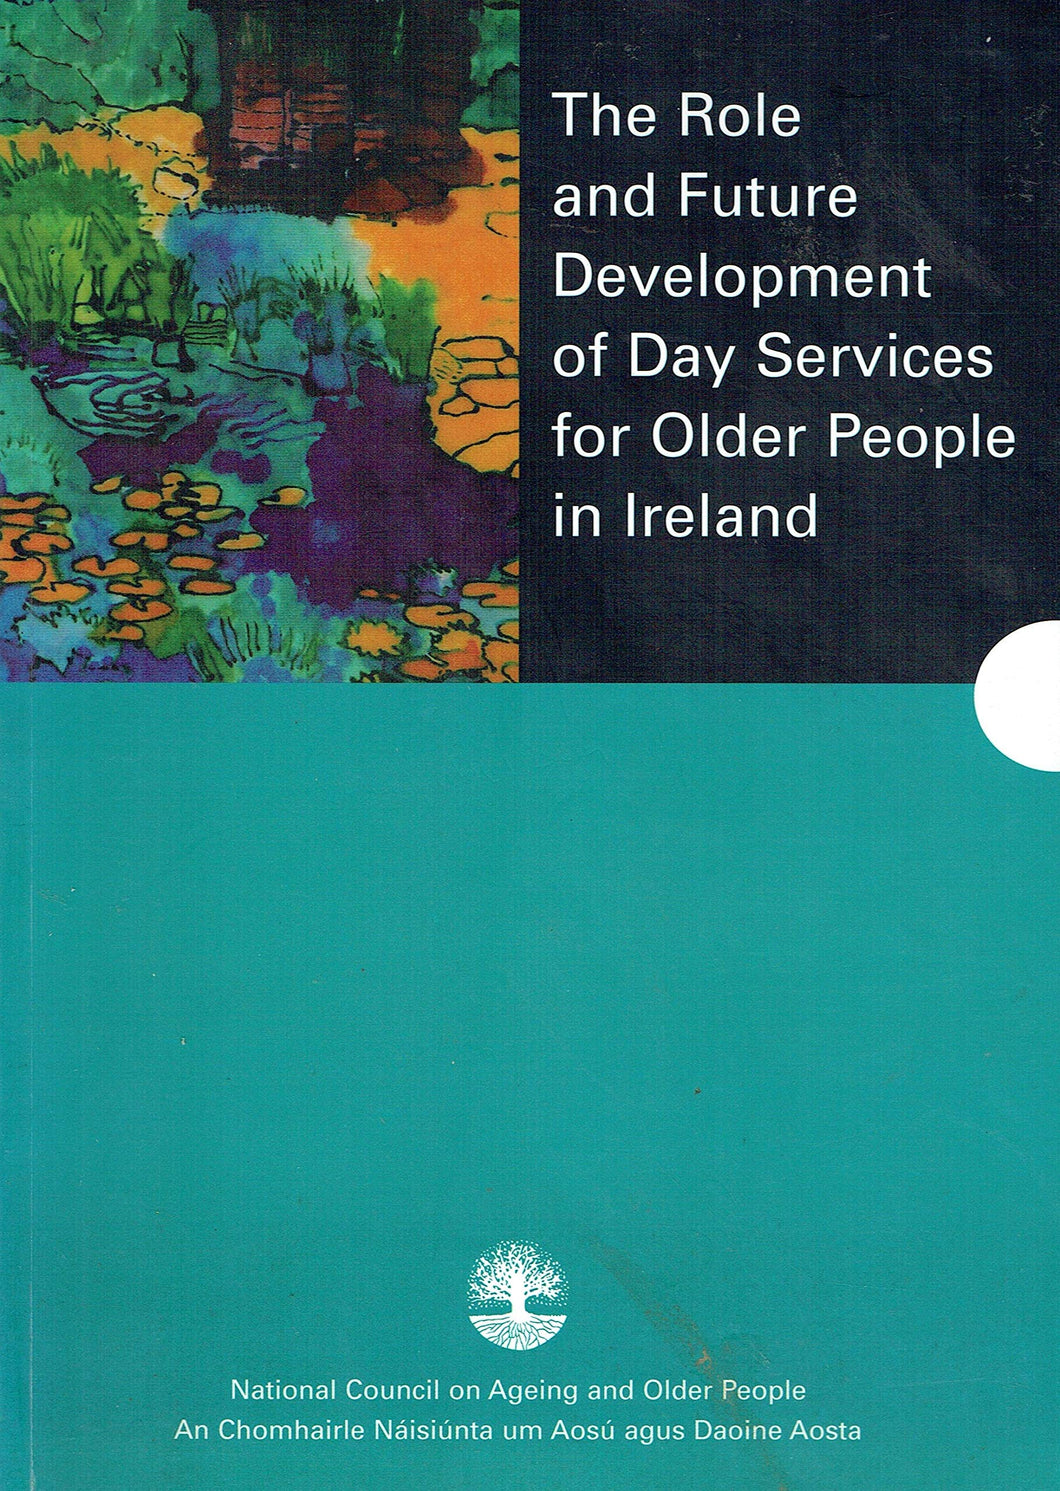 The Role and Future Development of Day Services for Older People in Ireland (Report)